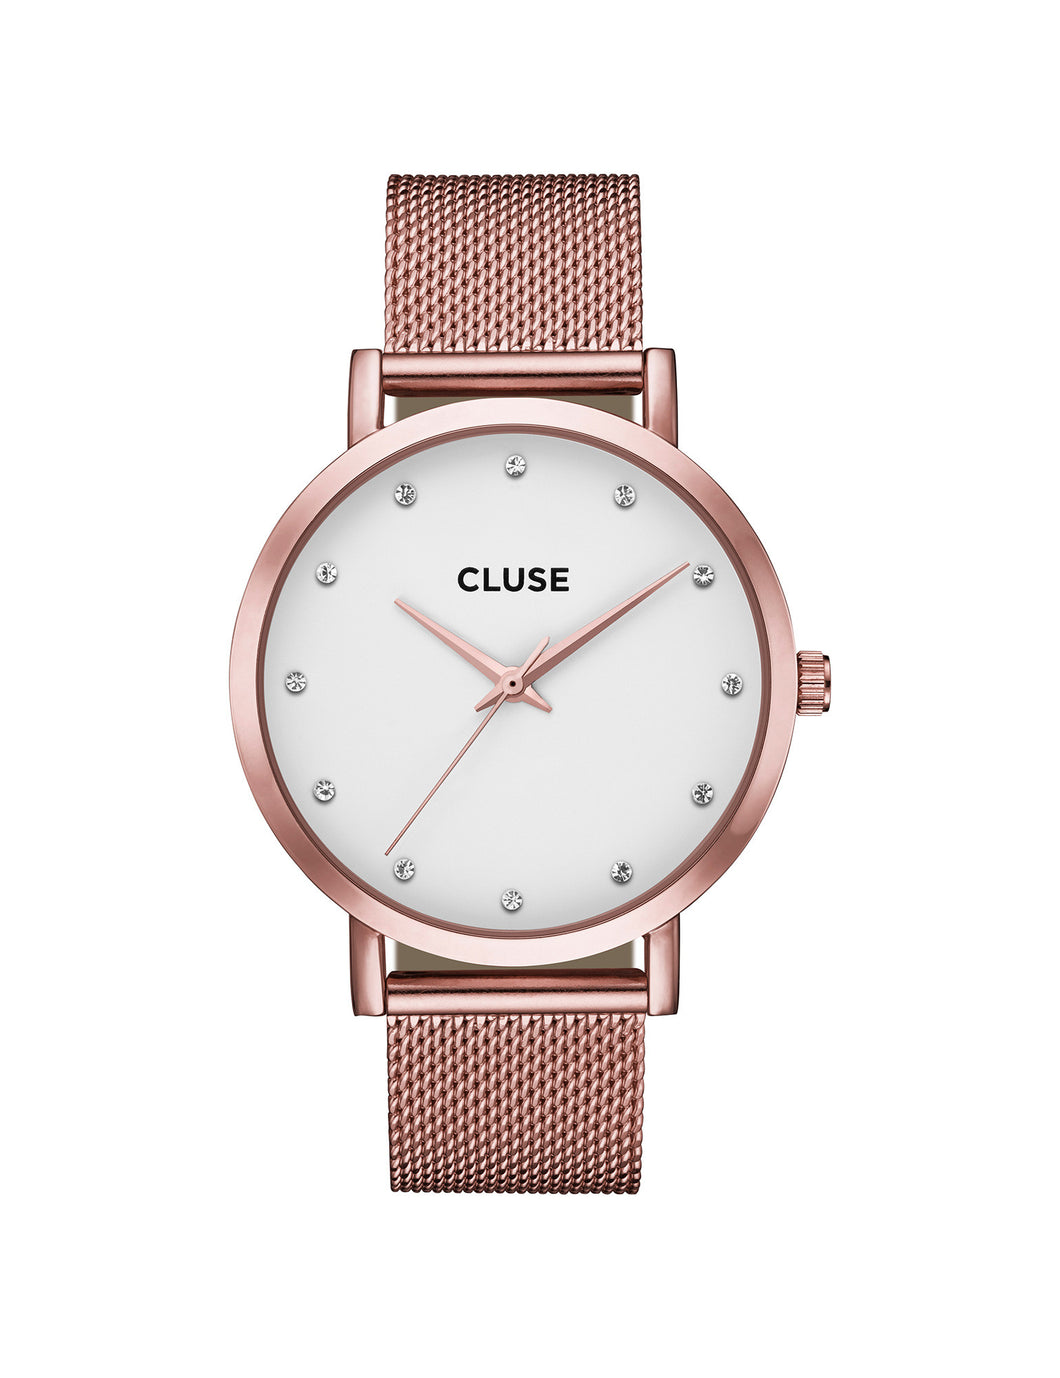 Cluse Pavane Mesh White, Rose Gold Watch